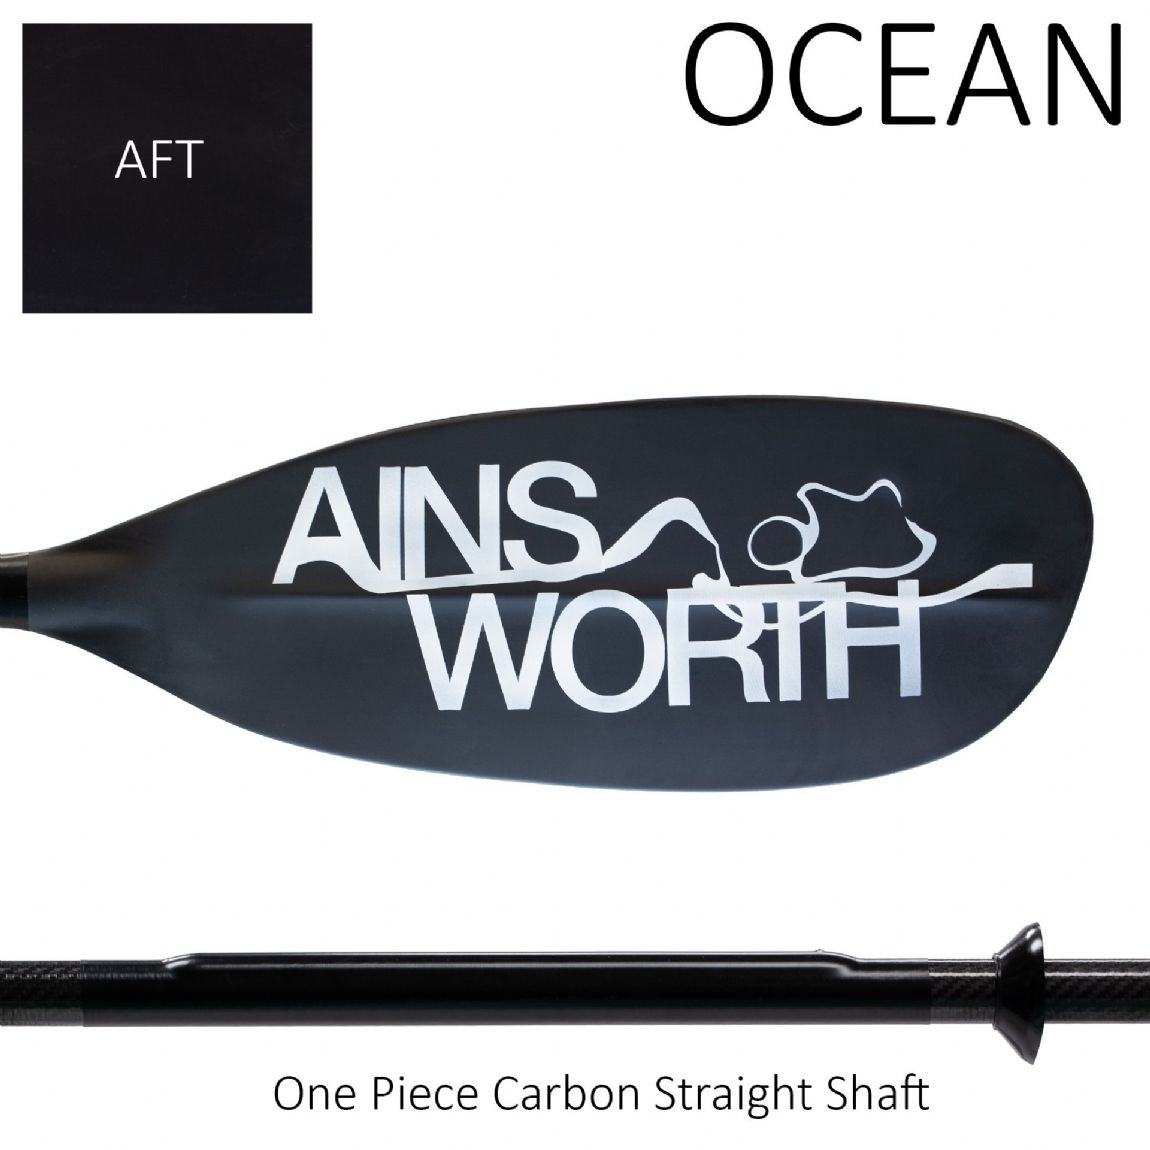 OCEAN (AFT) One Piece Carbon Straight Shaft